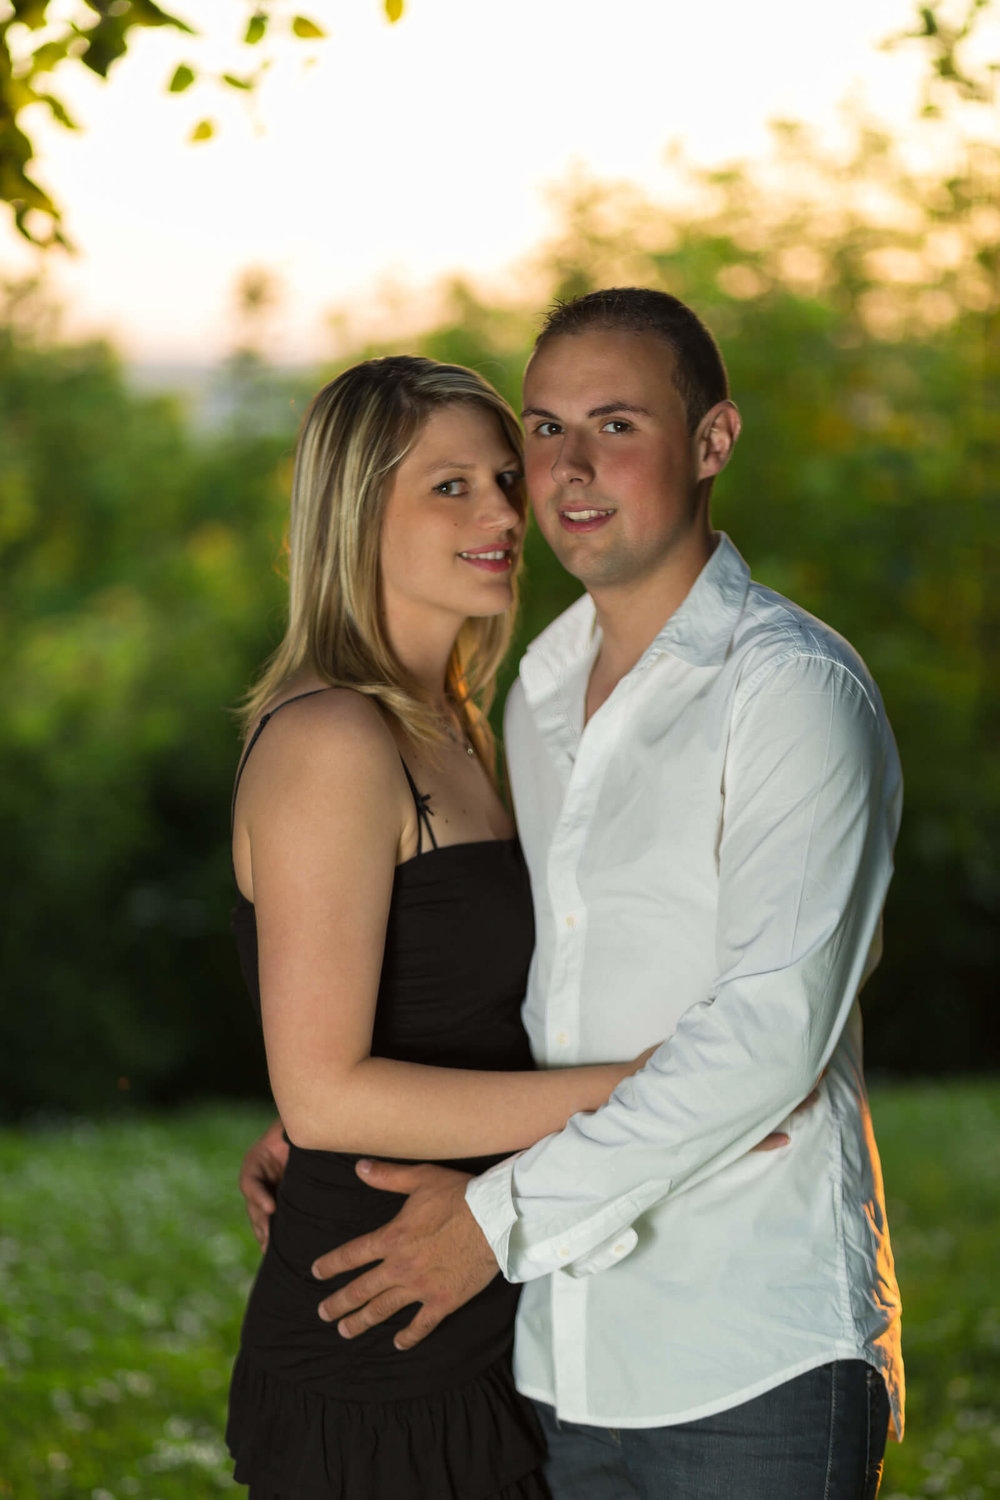 Photographe epernay Photo couple Tristan Meunier-6.jpg